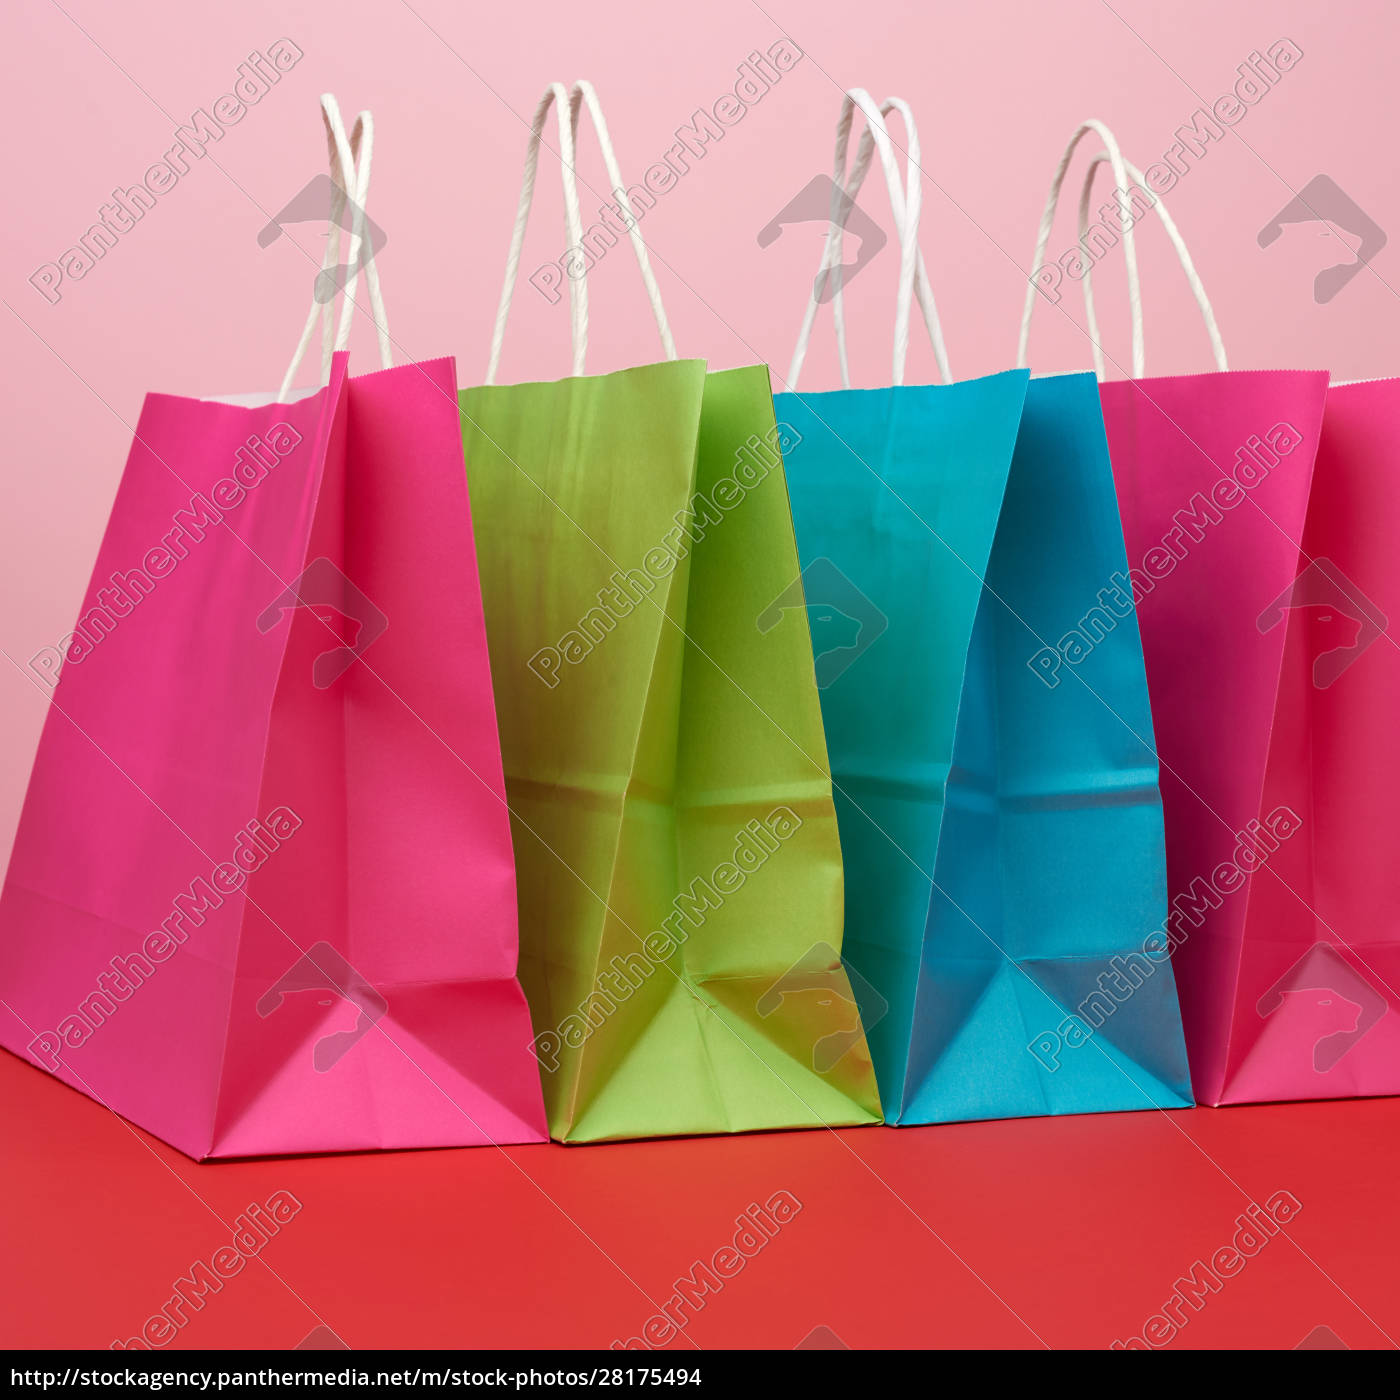 empty, multicolored, paper, bags, for, shopping - 28175494